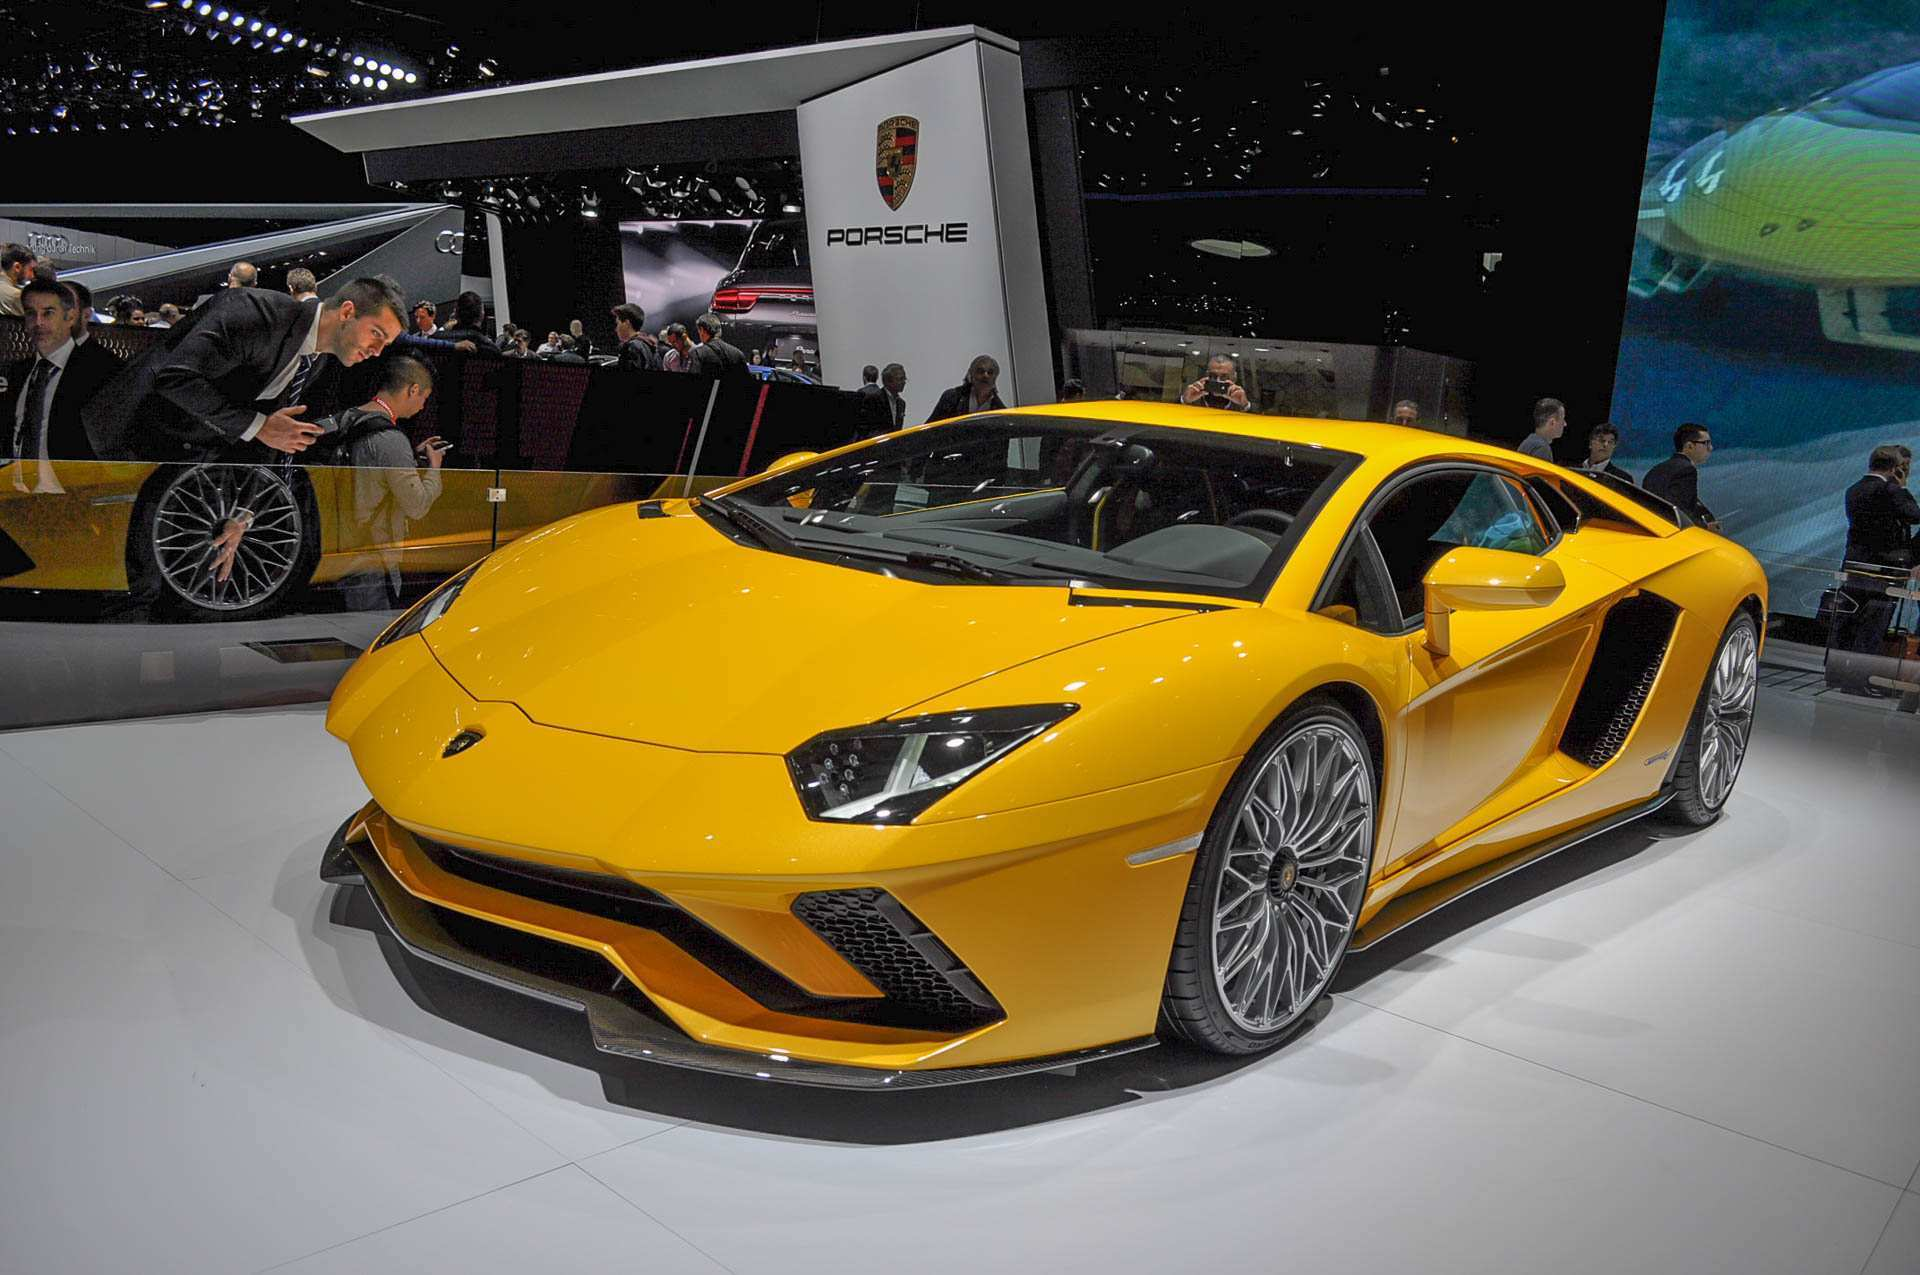 13 Concept of 2019 Lamborghini Horsepower Redesign and Concept by 2019 Lamborghini Horsepower